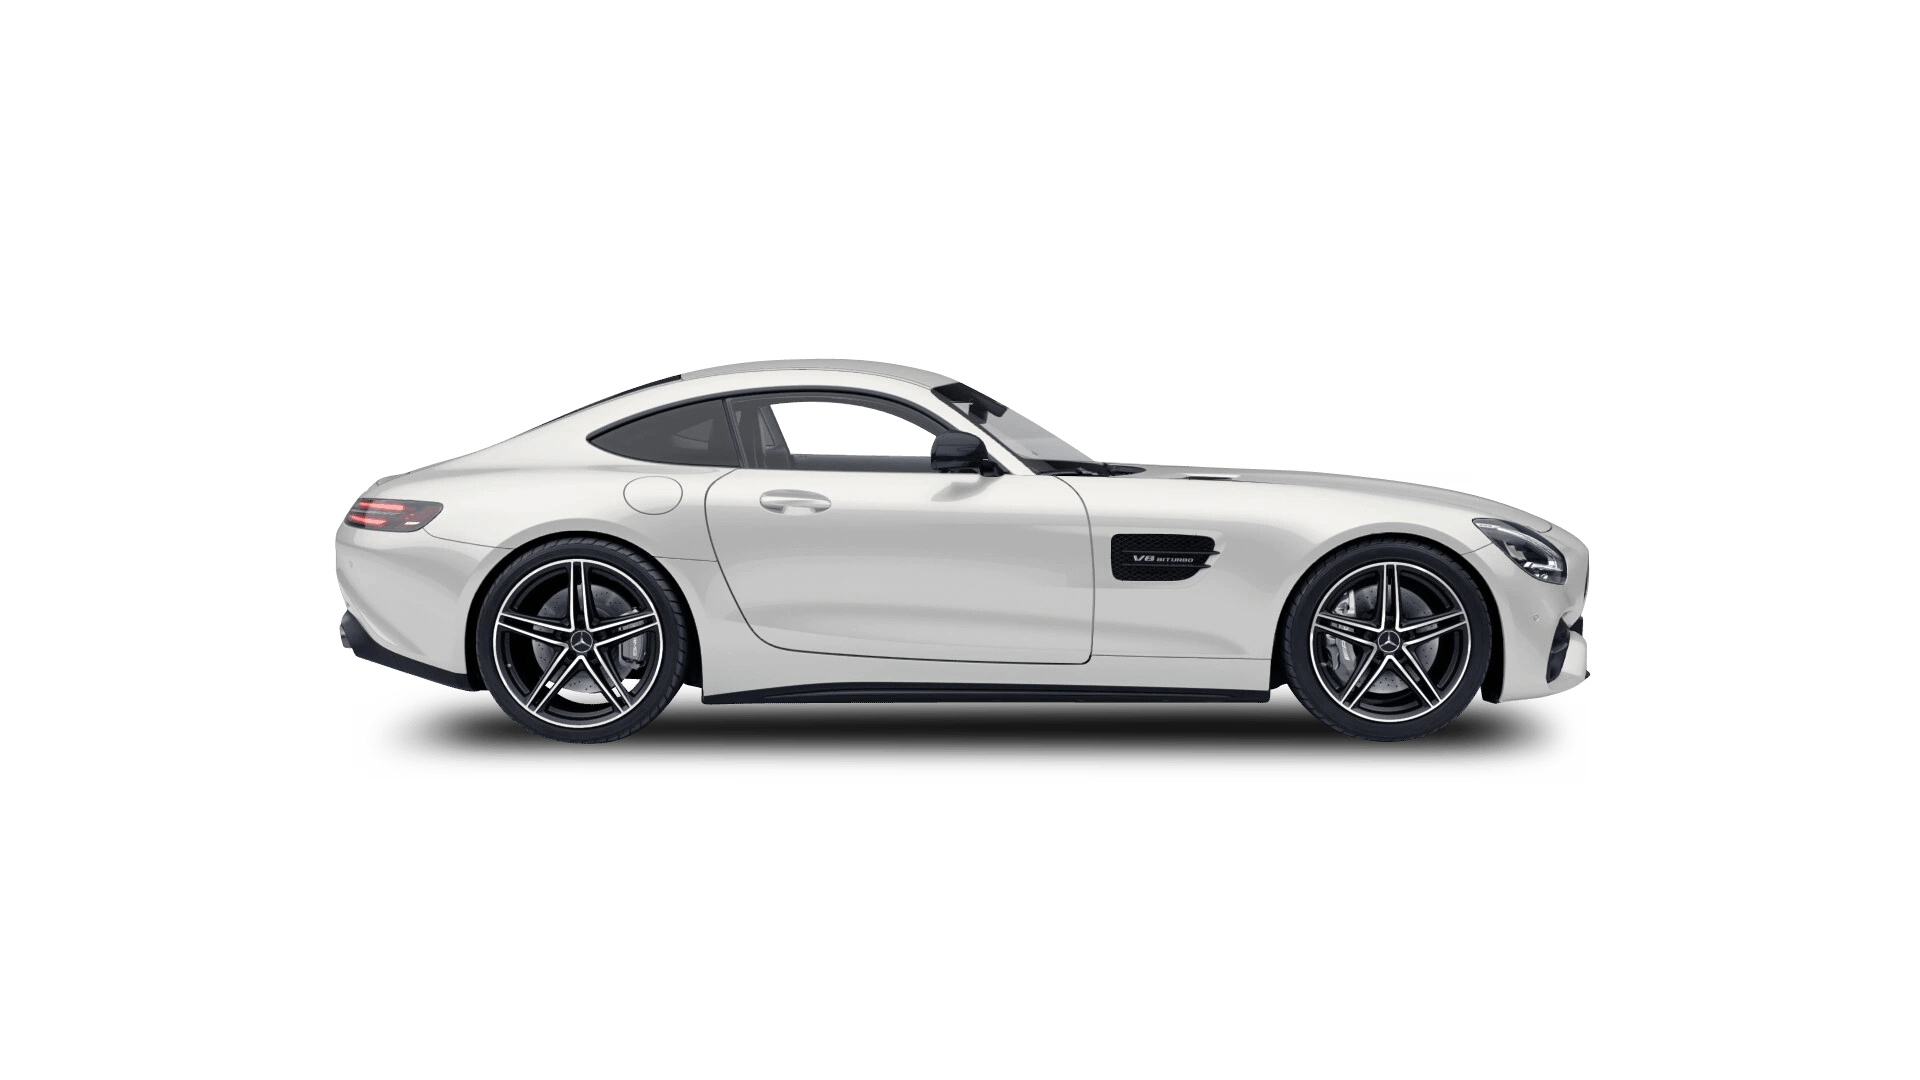 https://bluesky-cogcms.cdn.imgeng.in/media/35412/mercedes-amg-gt-edition-476-coupe.png